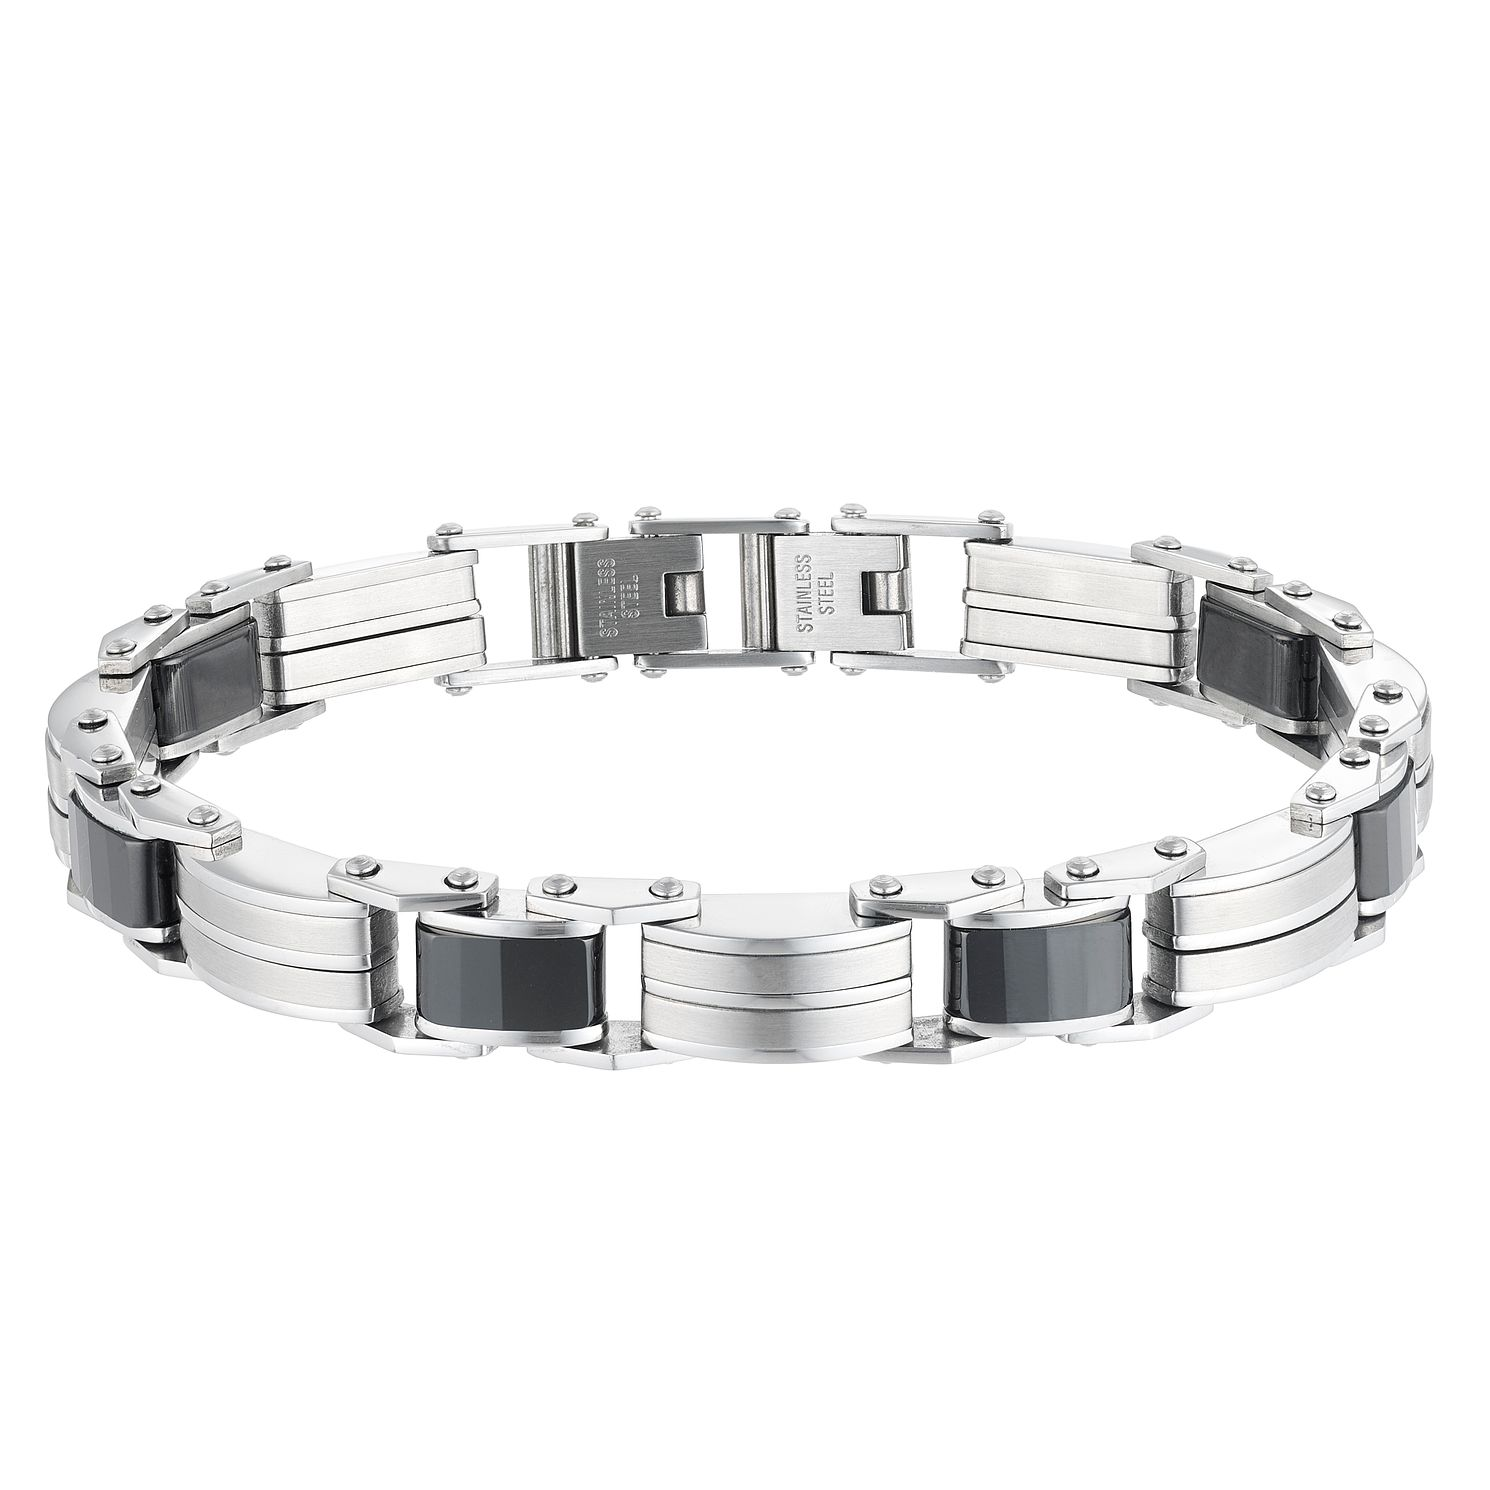 Stainless Steel & Ceramic 8.25 inches Men's Bracelet - Product number 3930637